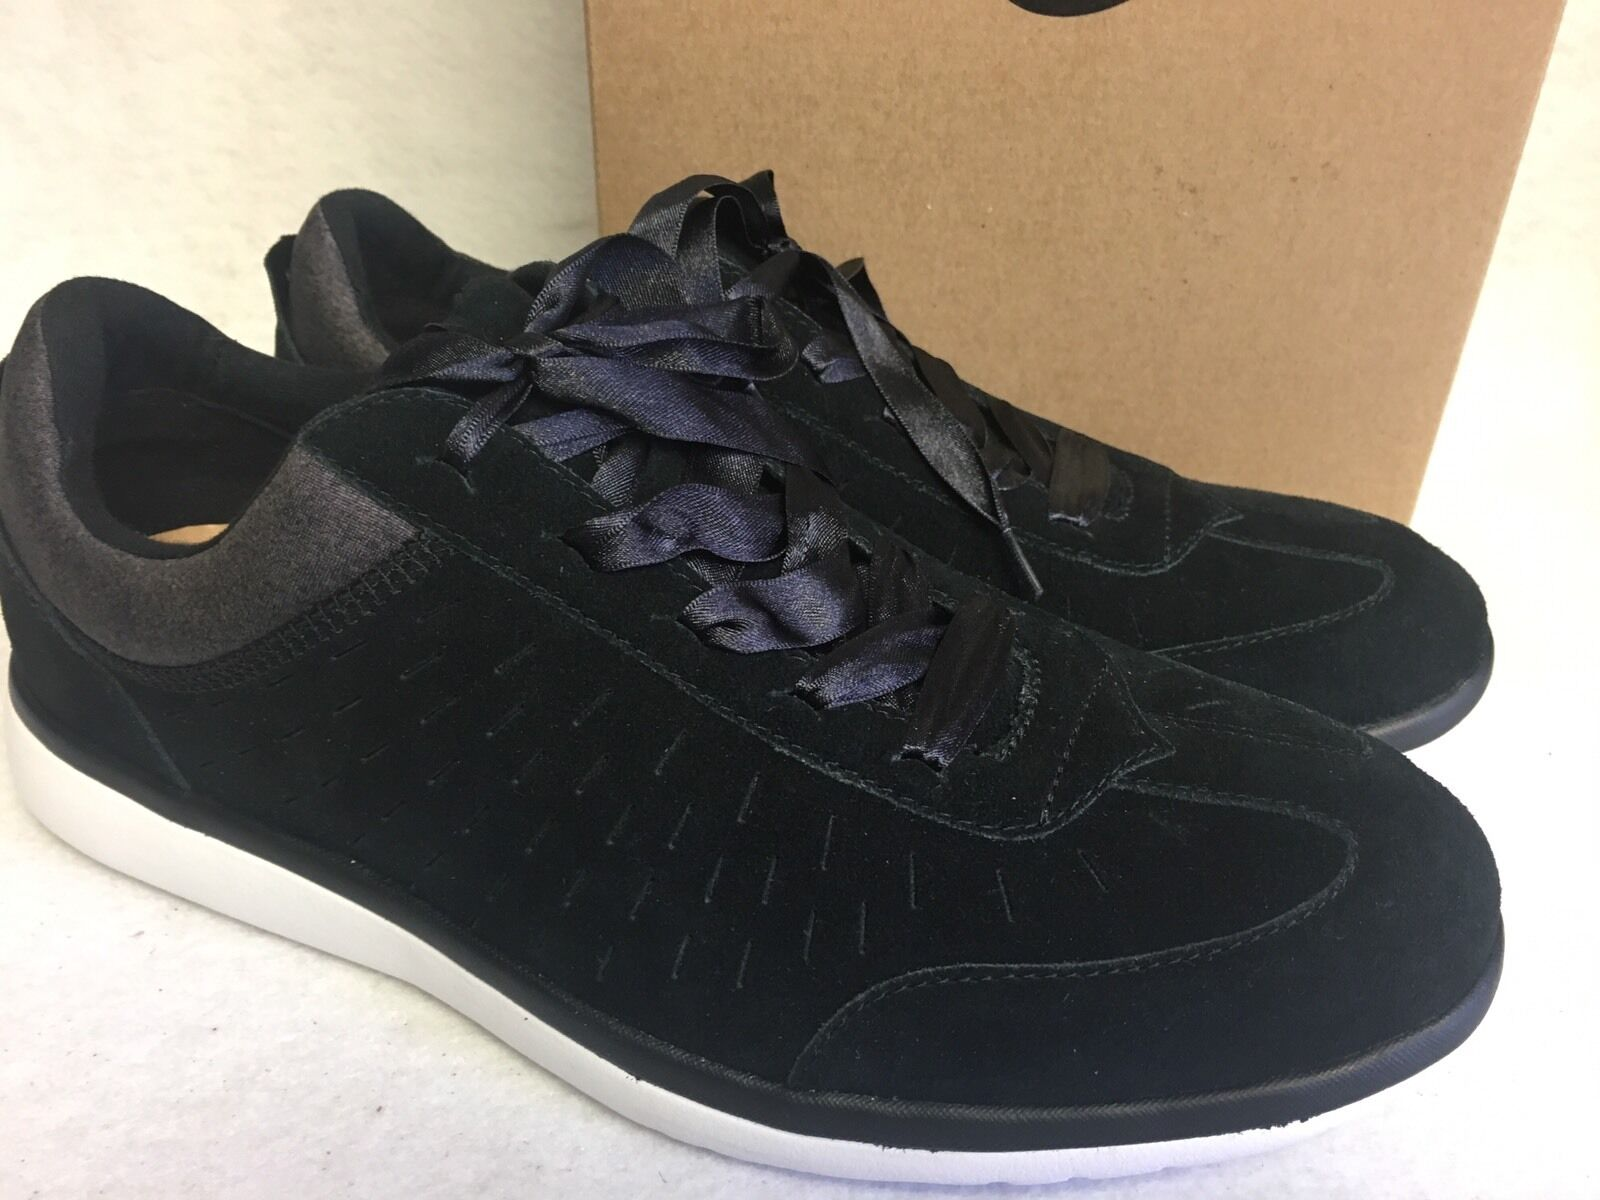 Ugg Australia Victoria Lace-up Suede Sneaker Ribbon Black 1017011 sizes